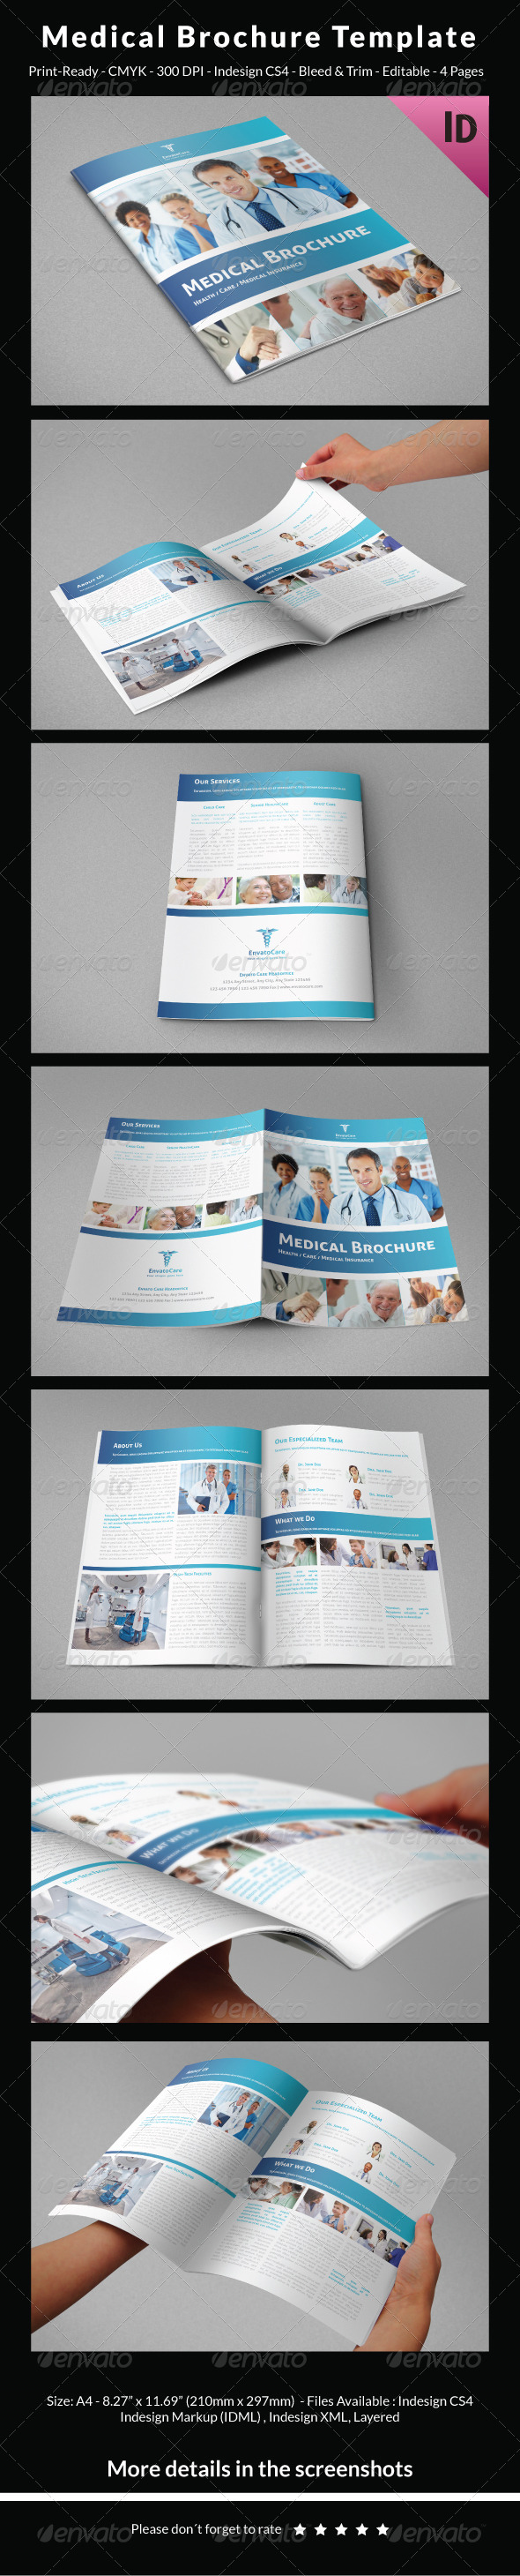 Healthcare medical pharma psd brochure templates for Medical brochure templates